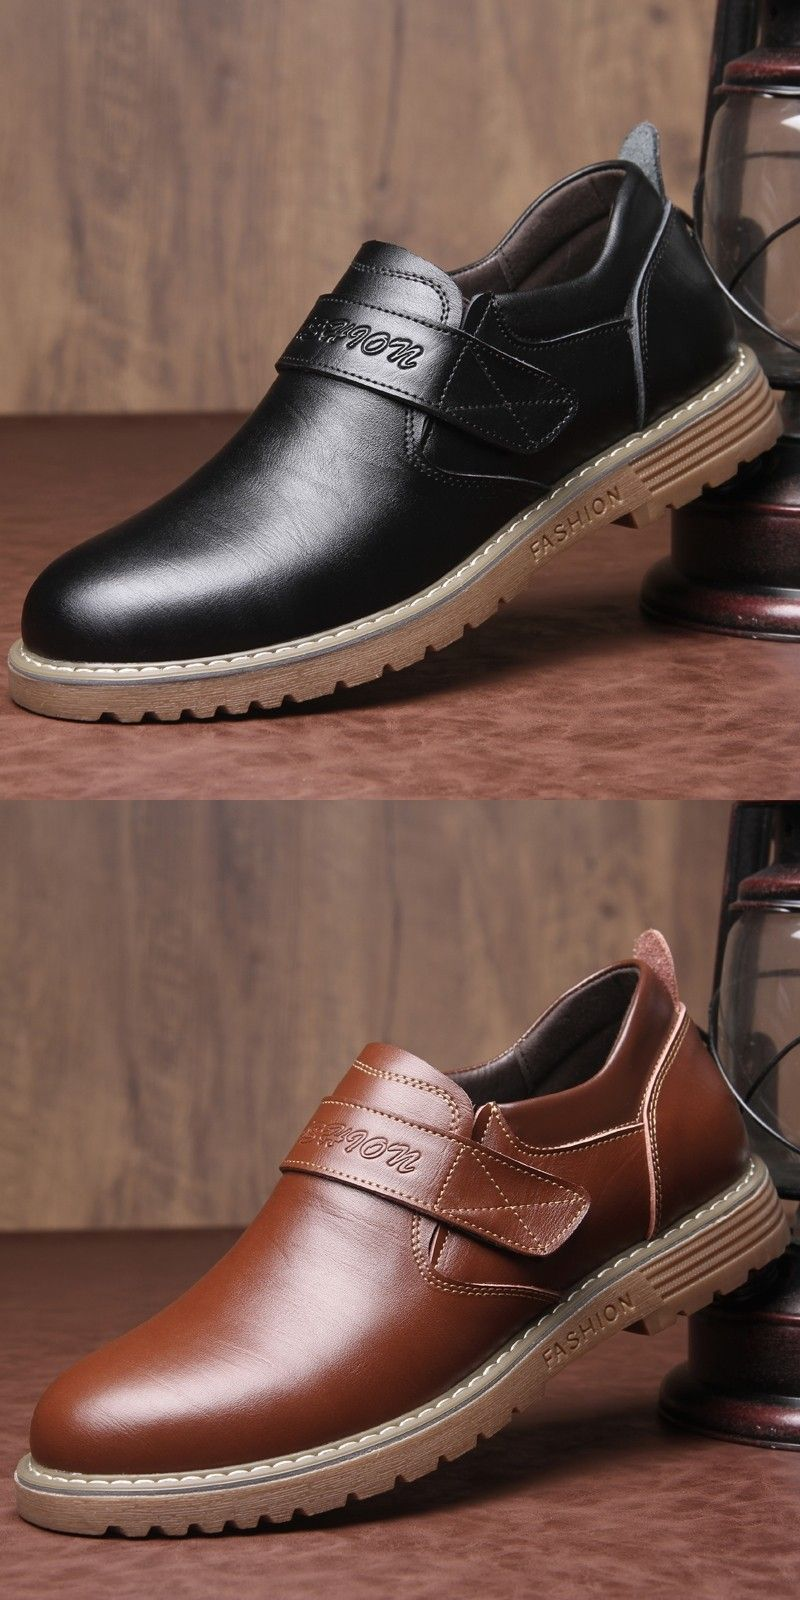 Prelesty Latest Mode Vintage Wedding Men Dress Monk Strap Shoes Formal Buckle Leather High Quality